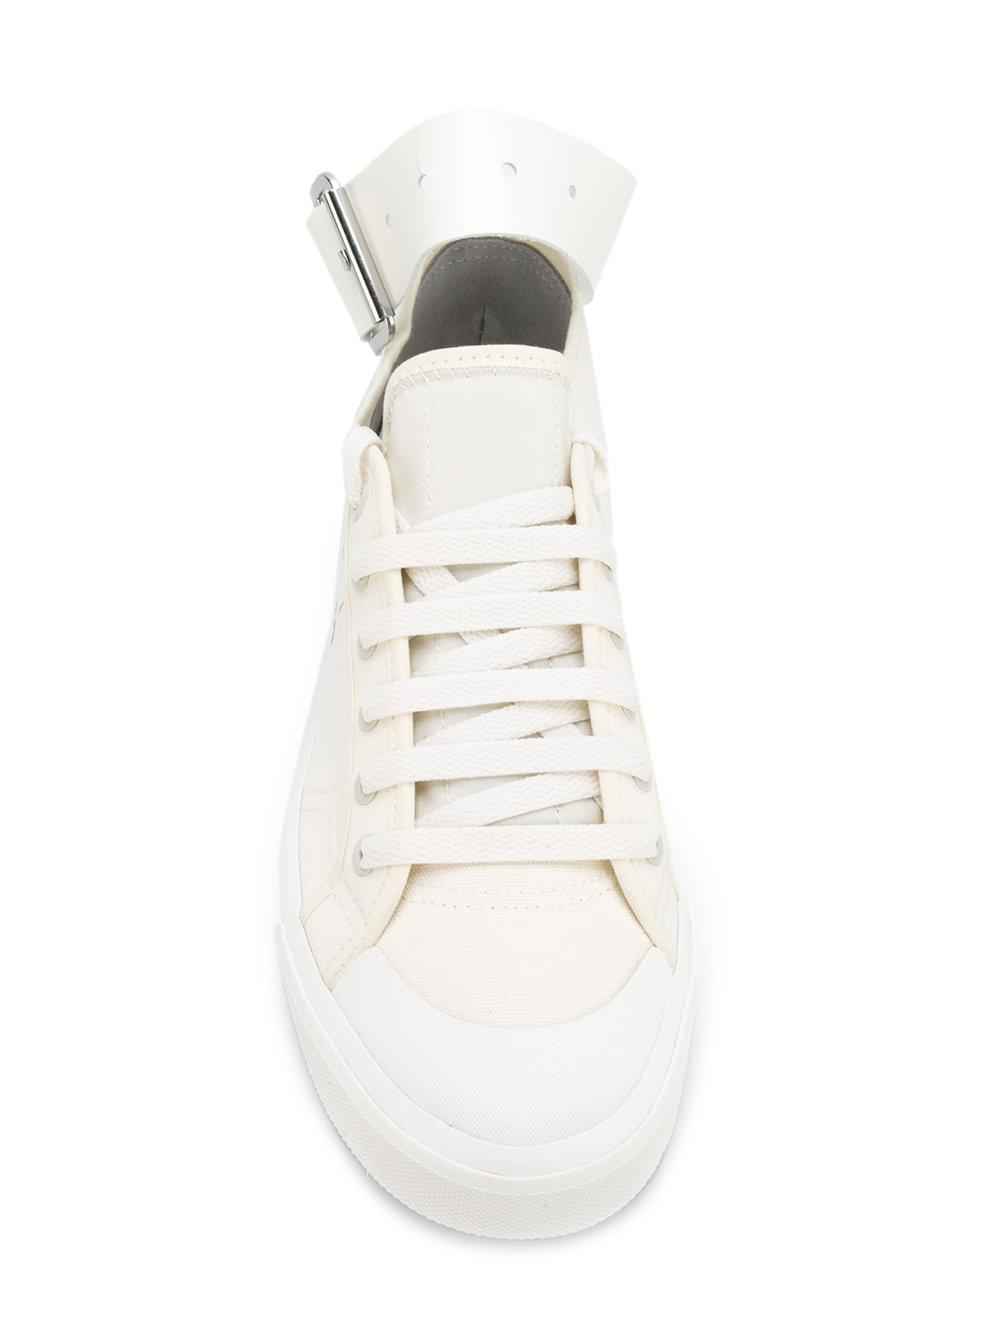 adidas By Raf Simons Cotton Spirit Buckle Sneakers in White